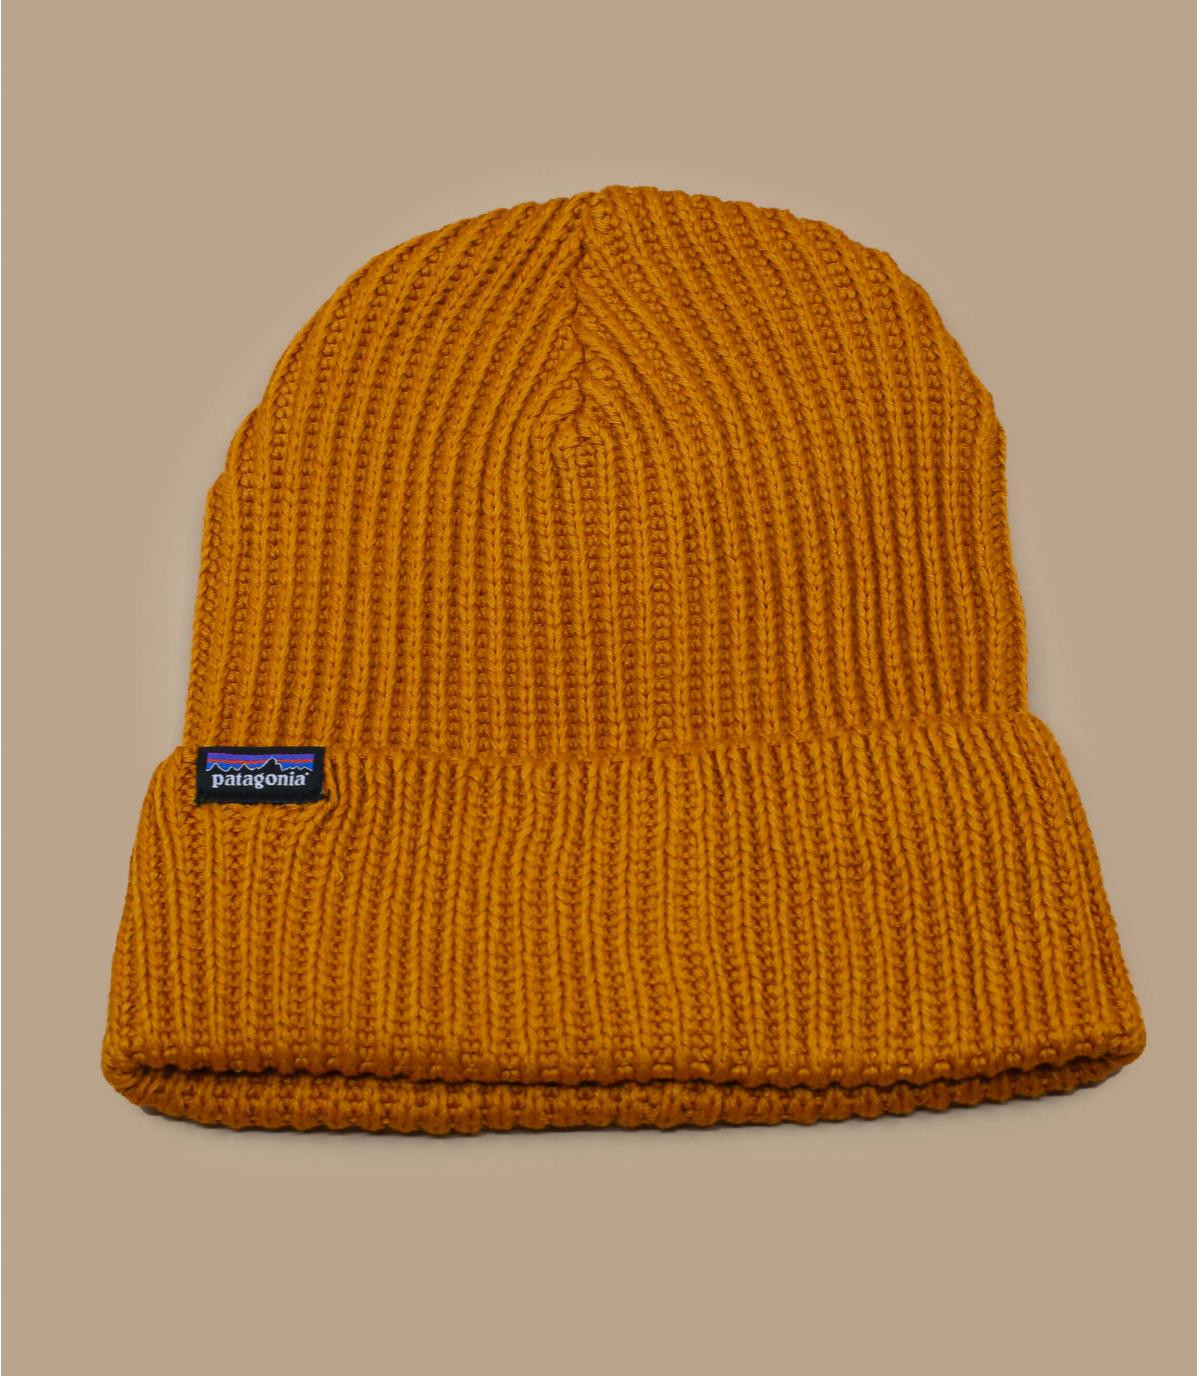 Détails Fisherman's Rolled Beanie buckwheat - image 2